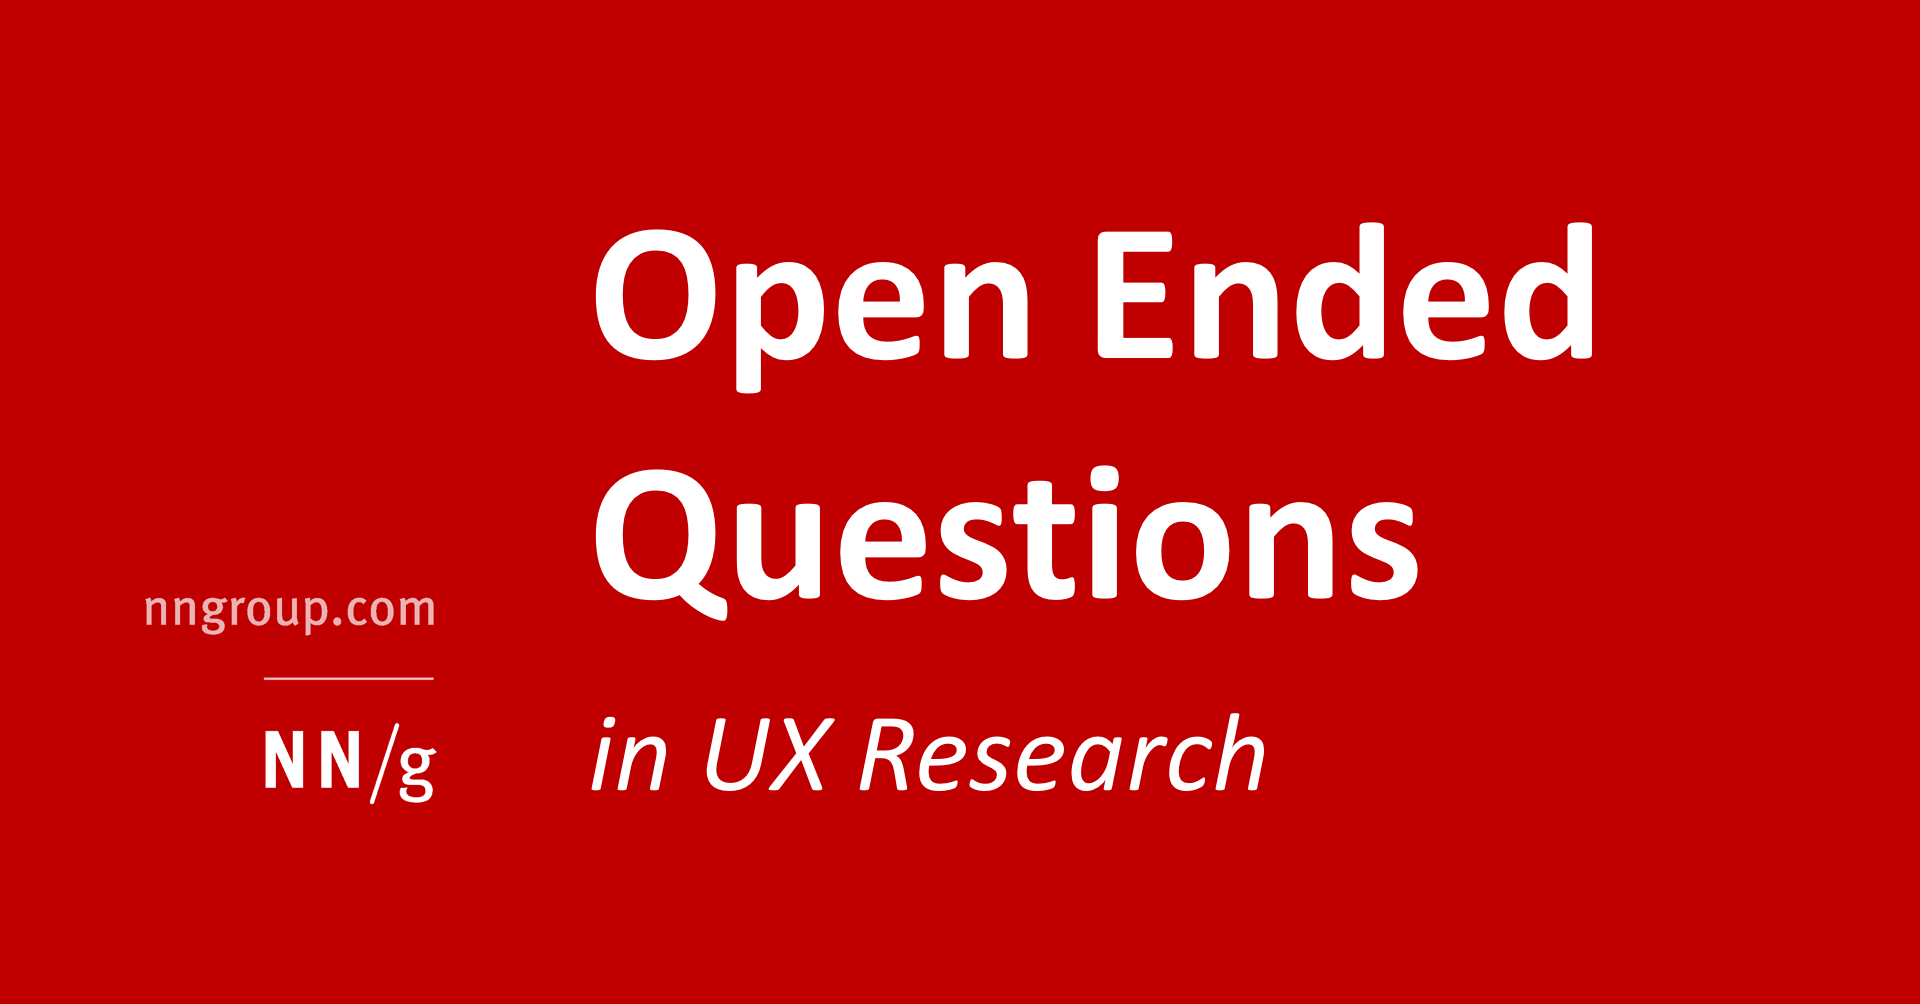 Open-Ended vs  Closed-Ended Questions in User Research